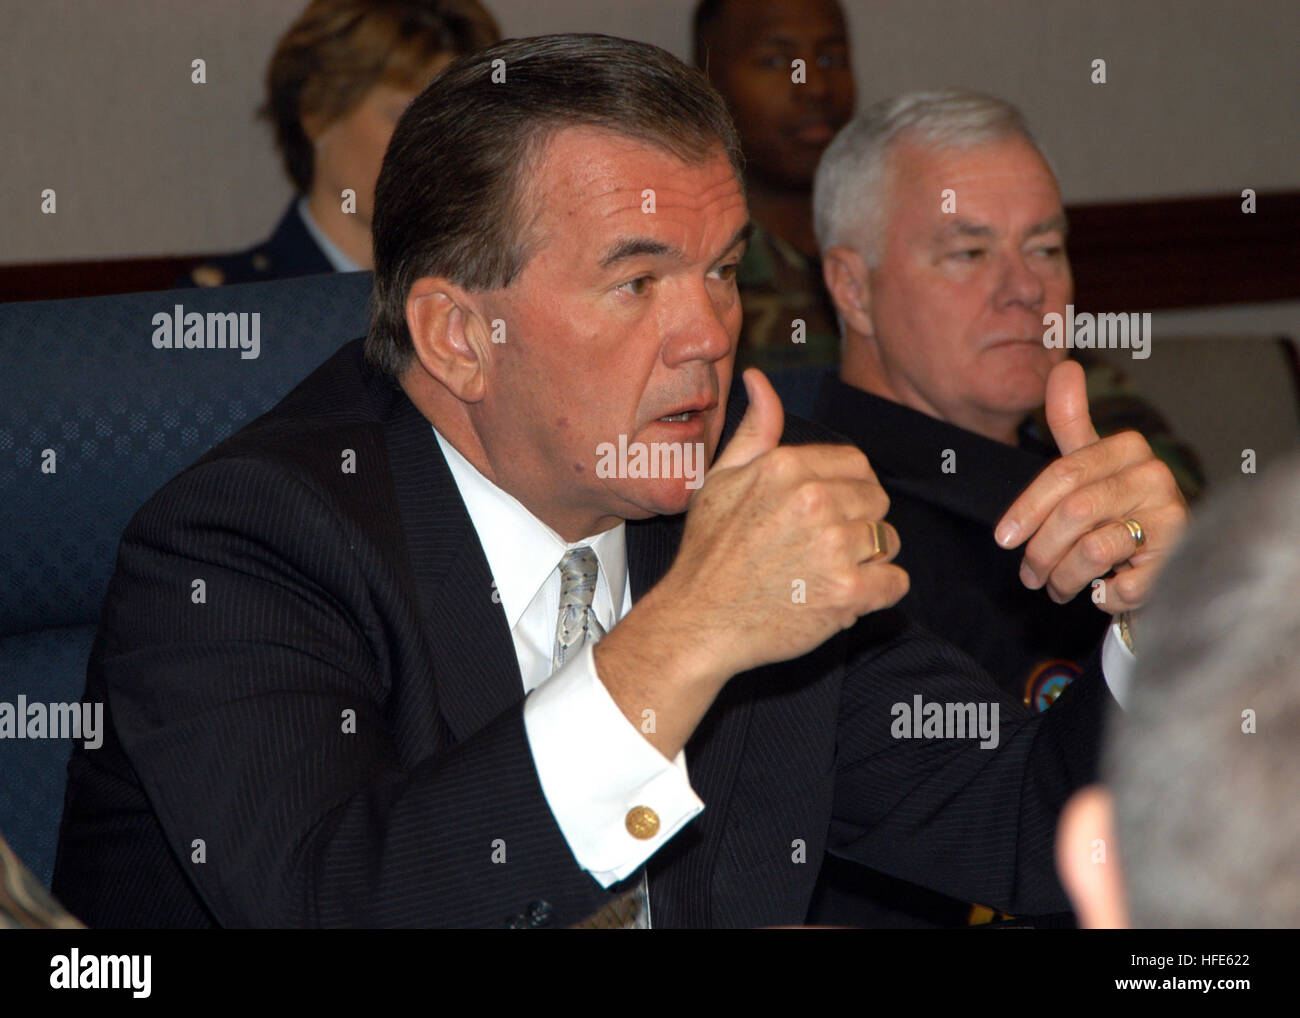 041117-N-2227W-005 Peterson Air Force Base, Colo. (Nov. 17, 2004) - Secretary of Homeland Security Tom Ridge discusses - Stock Image